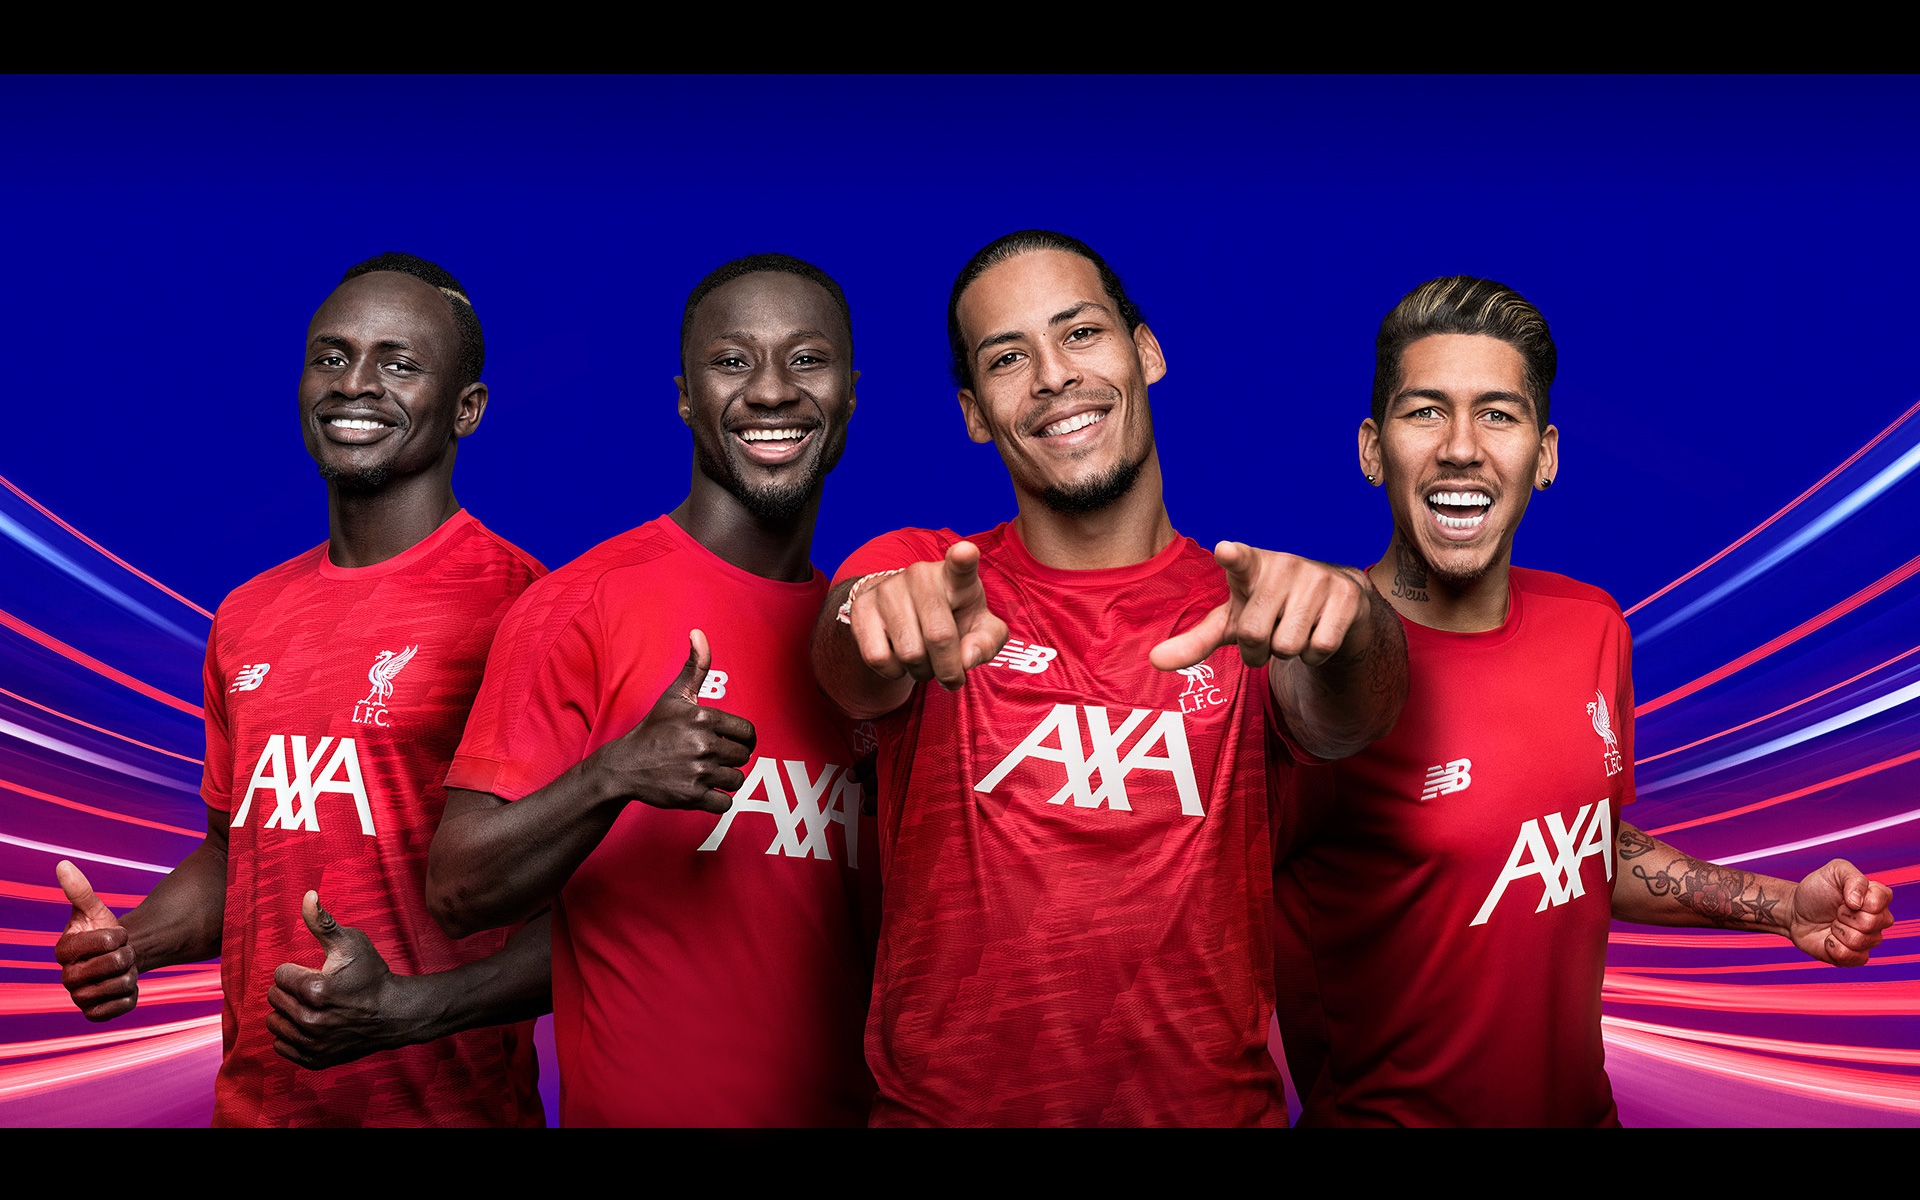 AXA Liverpool FC training kit featuring Sadio Mane, Naby Keita, Virgil Van Dijk and Roberto Firmino ©Paul Cooper